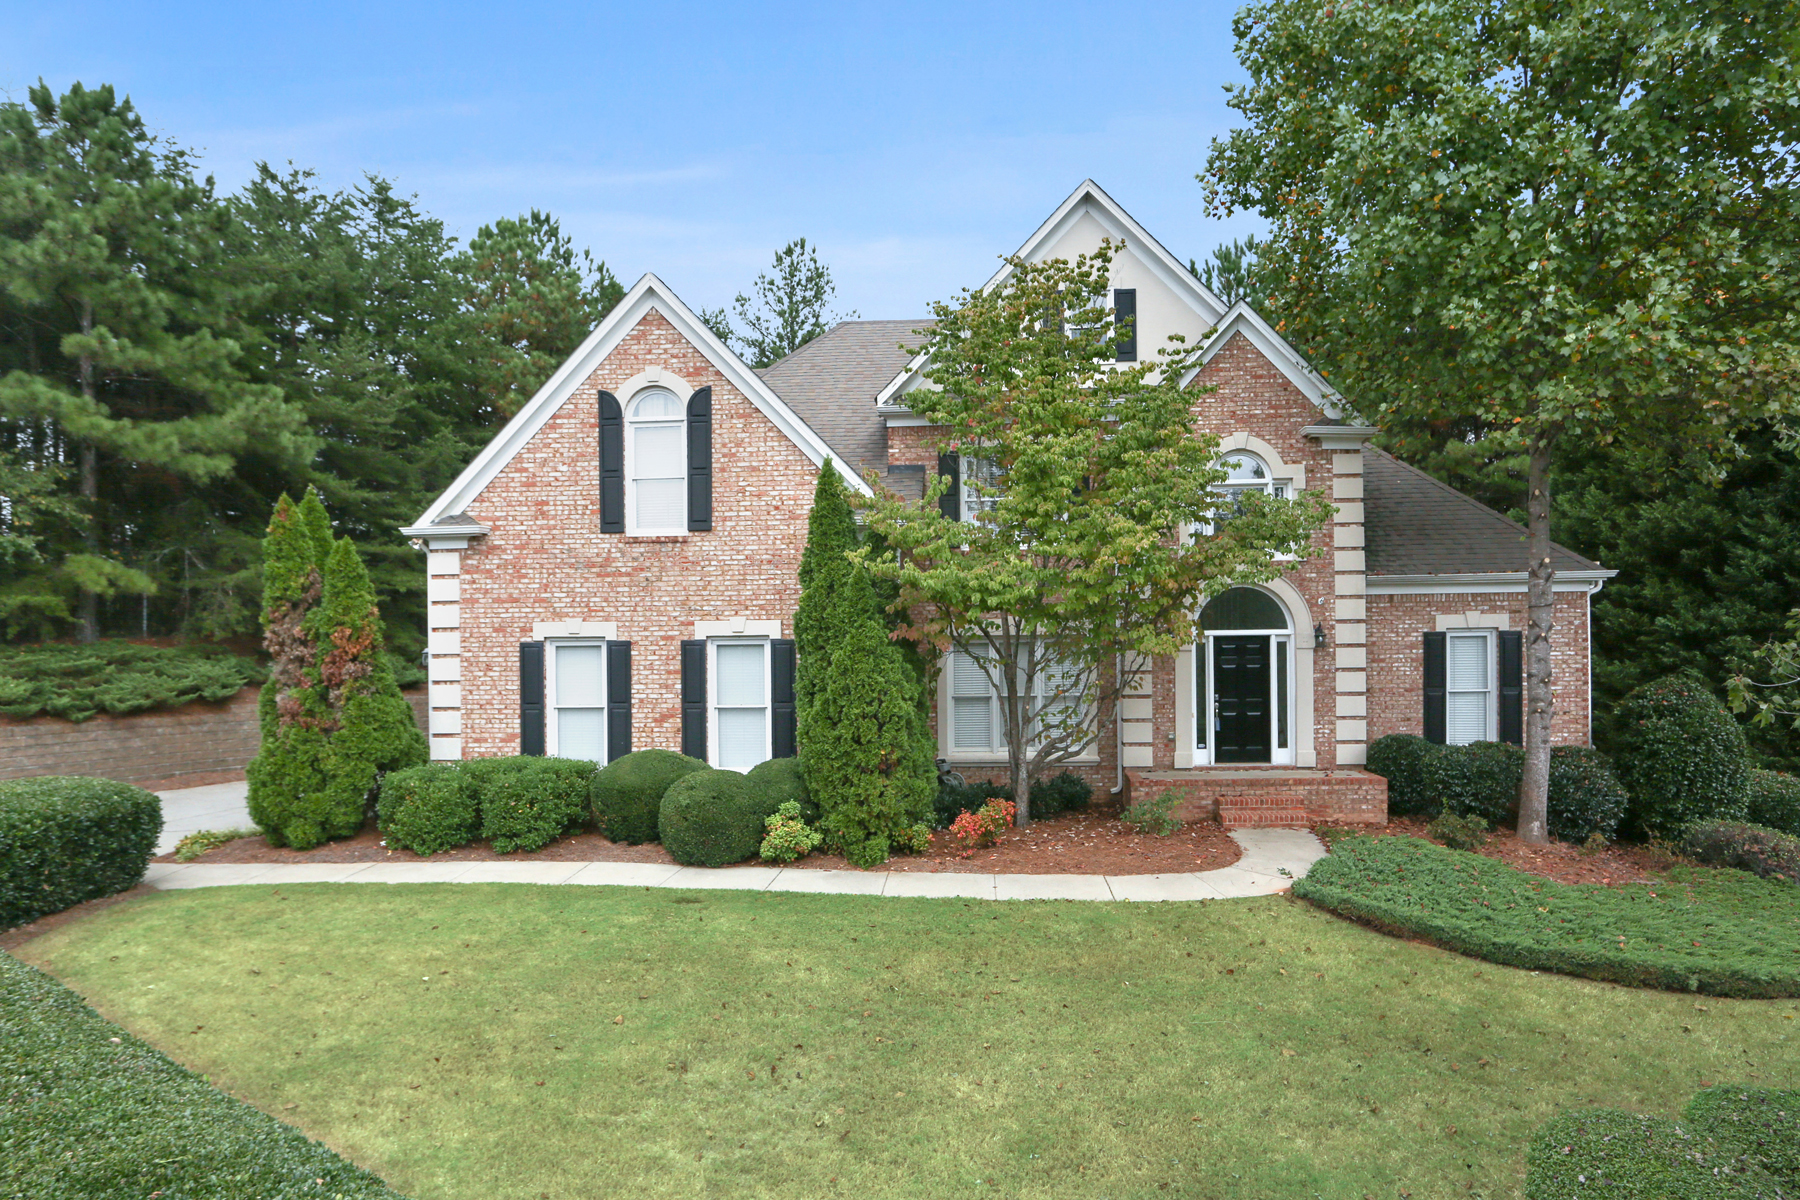 Single Family Home for Sale at Inviting Home on a Cul-de-sac with Plenty of Privacy 545 Woodmoore Ct Sandy Springs, Georgia 30342 United States